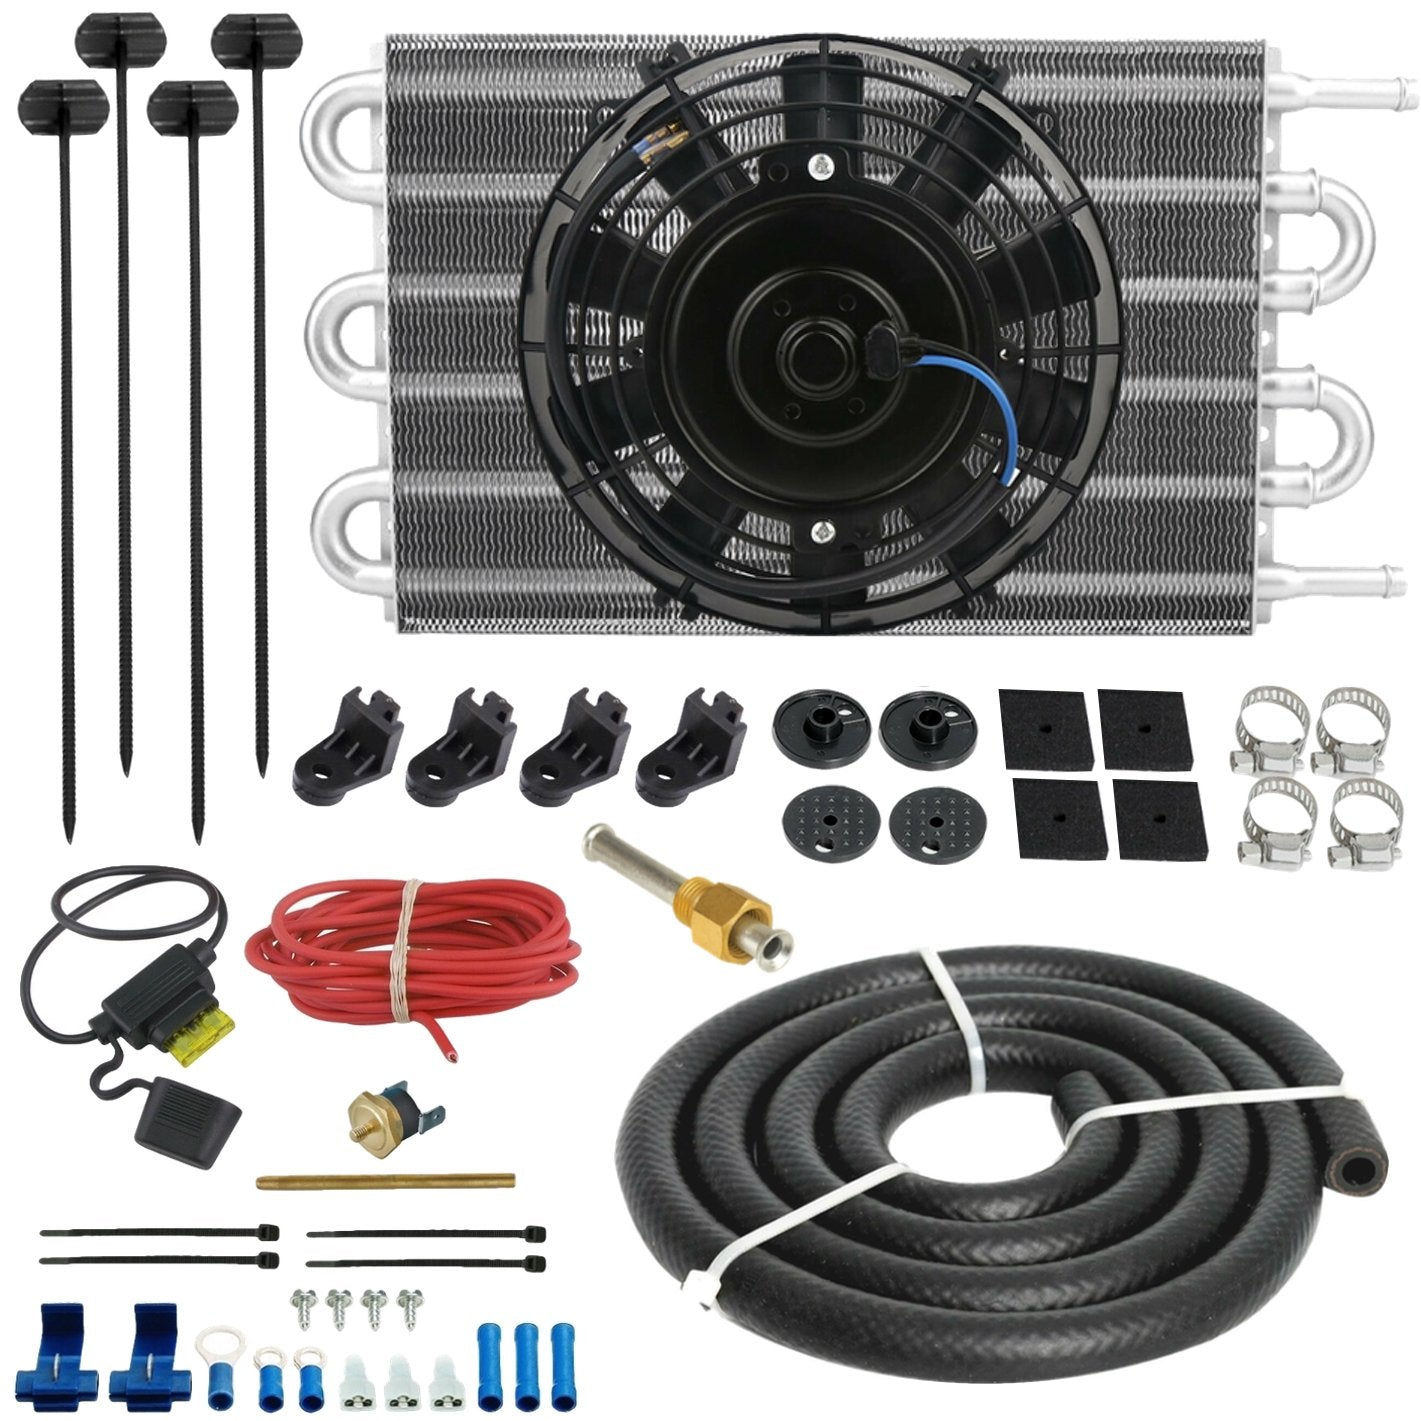 "6 Row Wide Engine Transmission Oil Cooler 6"" Inch Electric Cooling Fan Fin Thermostat Temperature Switch Kit-Oil Cooler-American Volt-6AN-3"" Inch-140'F On - 125'F Off-American Volt"